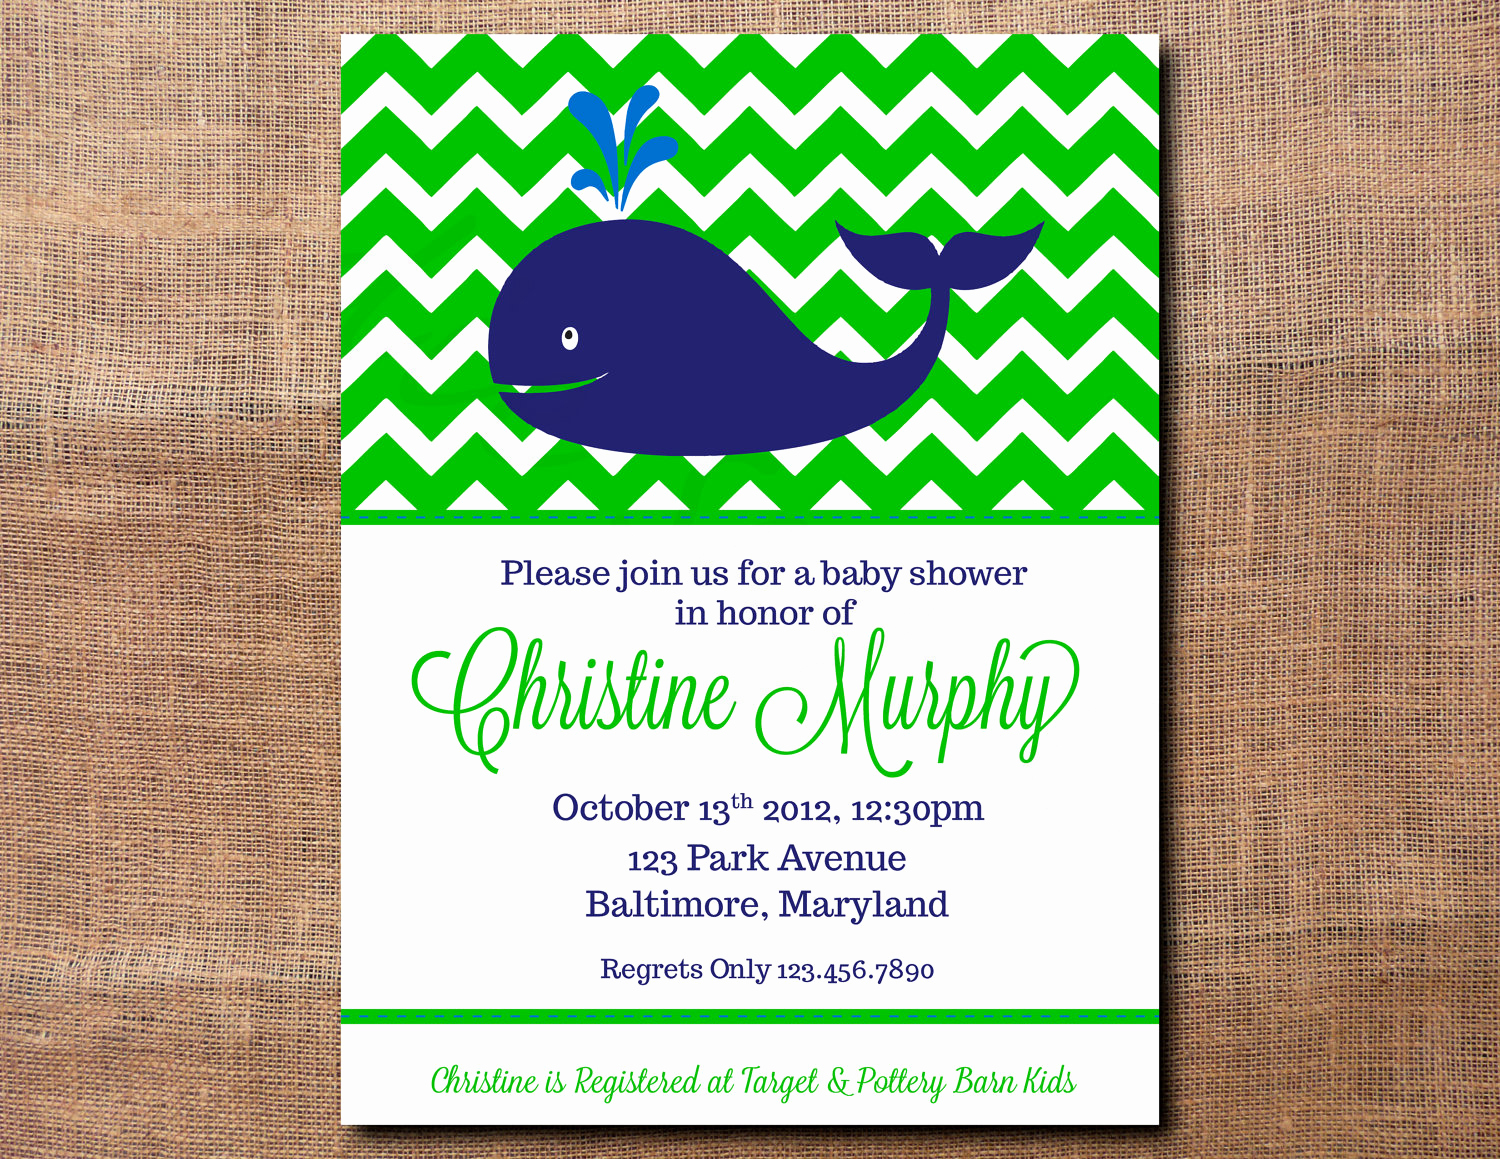 Whale Baby Shower Invitation Template New Printable Whale Baby Shower Invitations Chevron Design